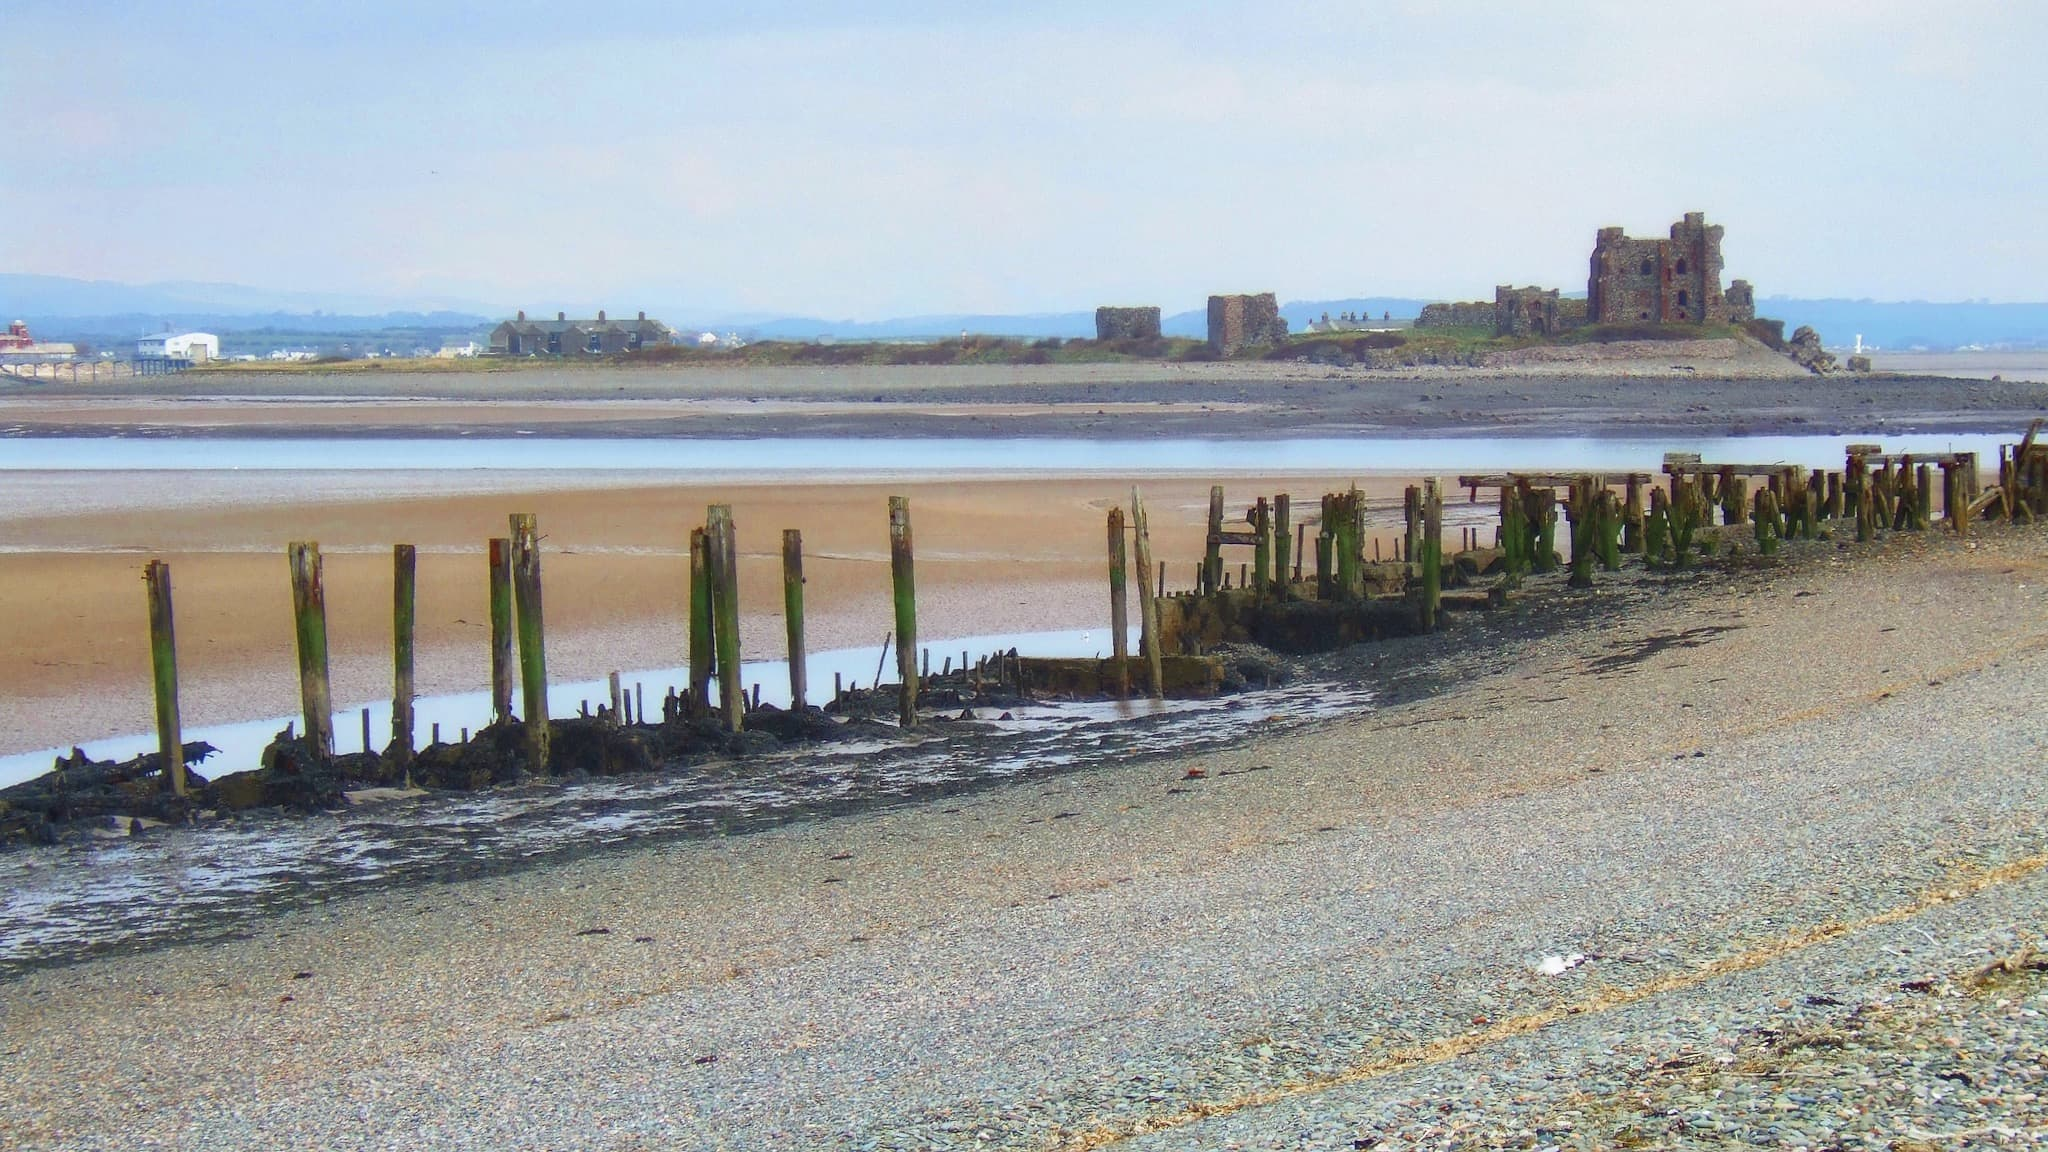 Piel Castle viewed from South Walney Nature Reserve. Photo by John Hill/padsbrother, licensed CC-BY-2.0.